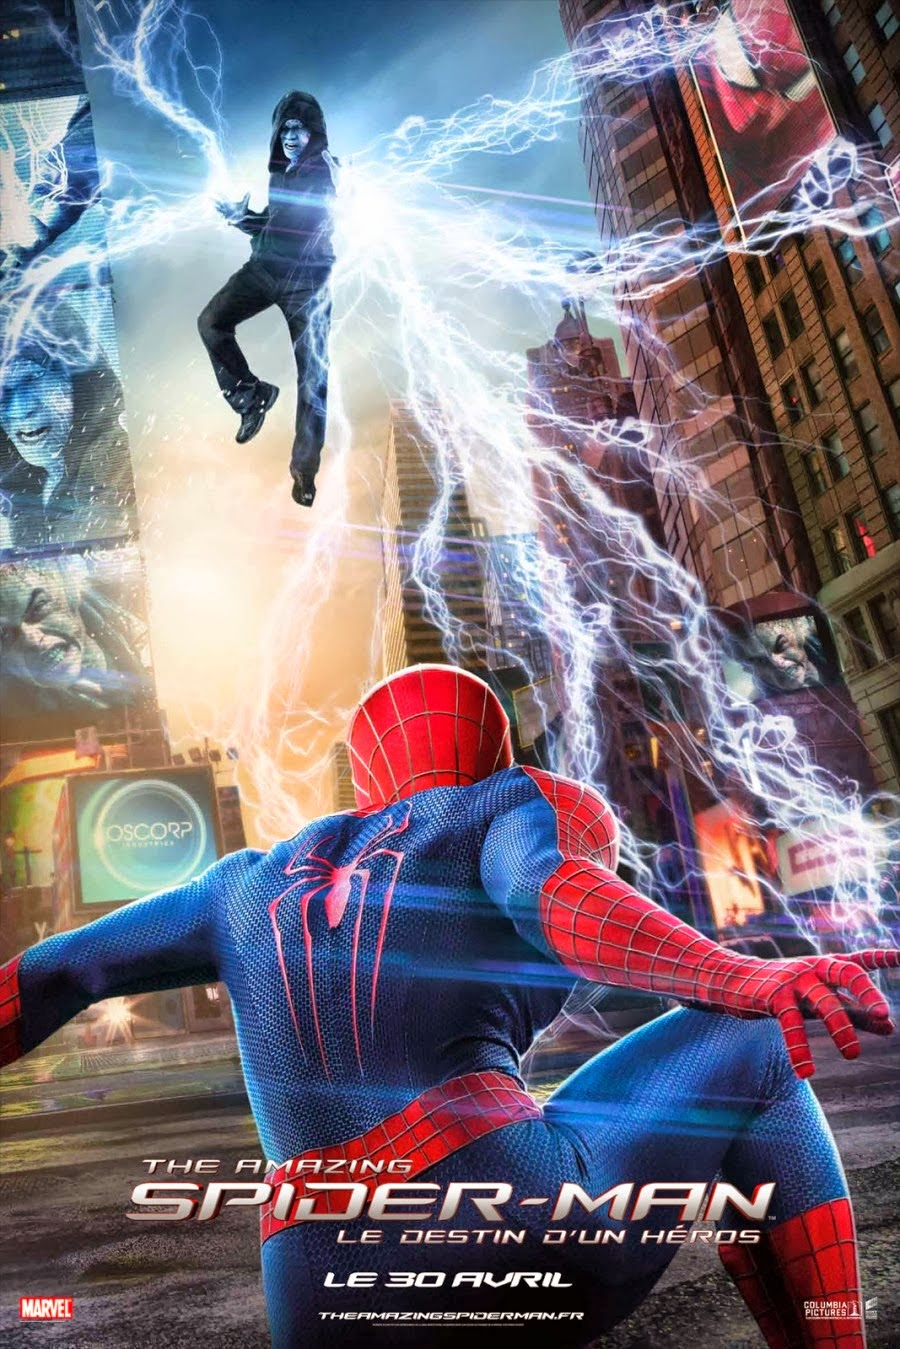 Regarder The Amazing Spider-Man : le destin d'un Héros en streaming - Film Streaming